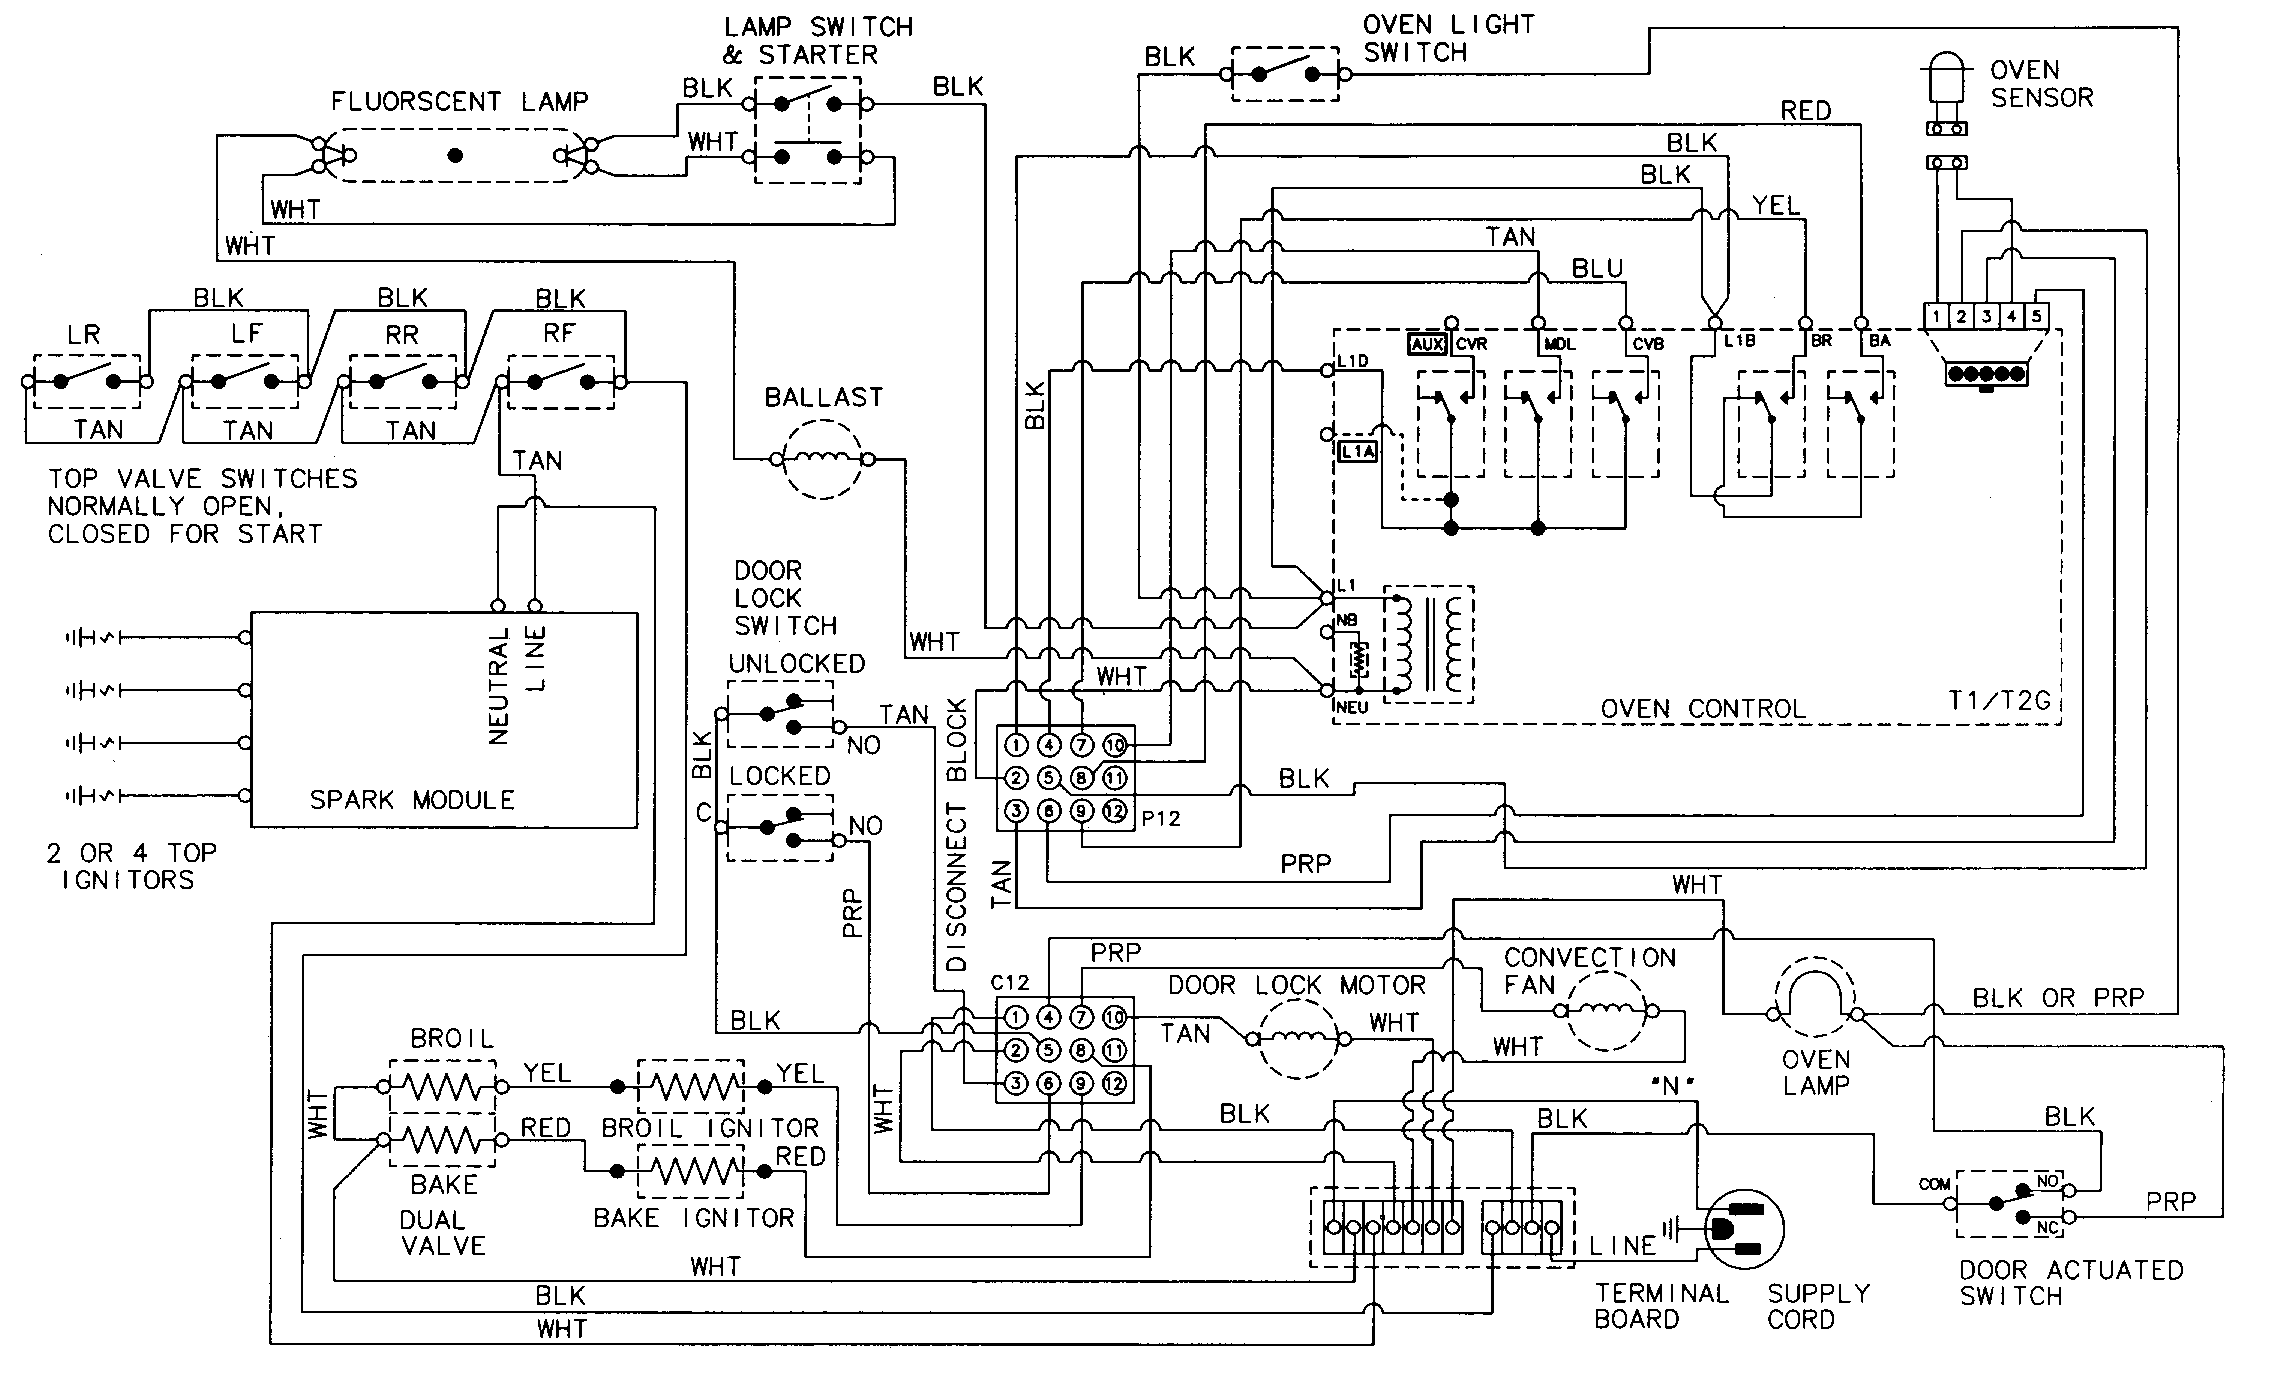 M0204067 00007?resize\=840%2C508 dod wiring diagram standard gandul 45 77 79 119 solic 200 wiring diagram at virtualis.co